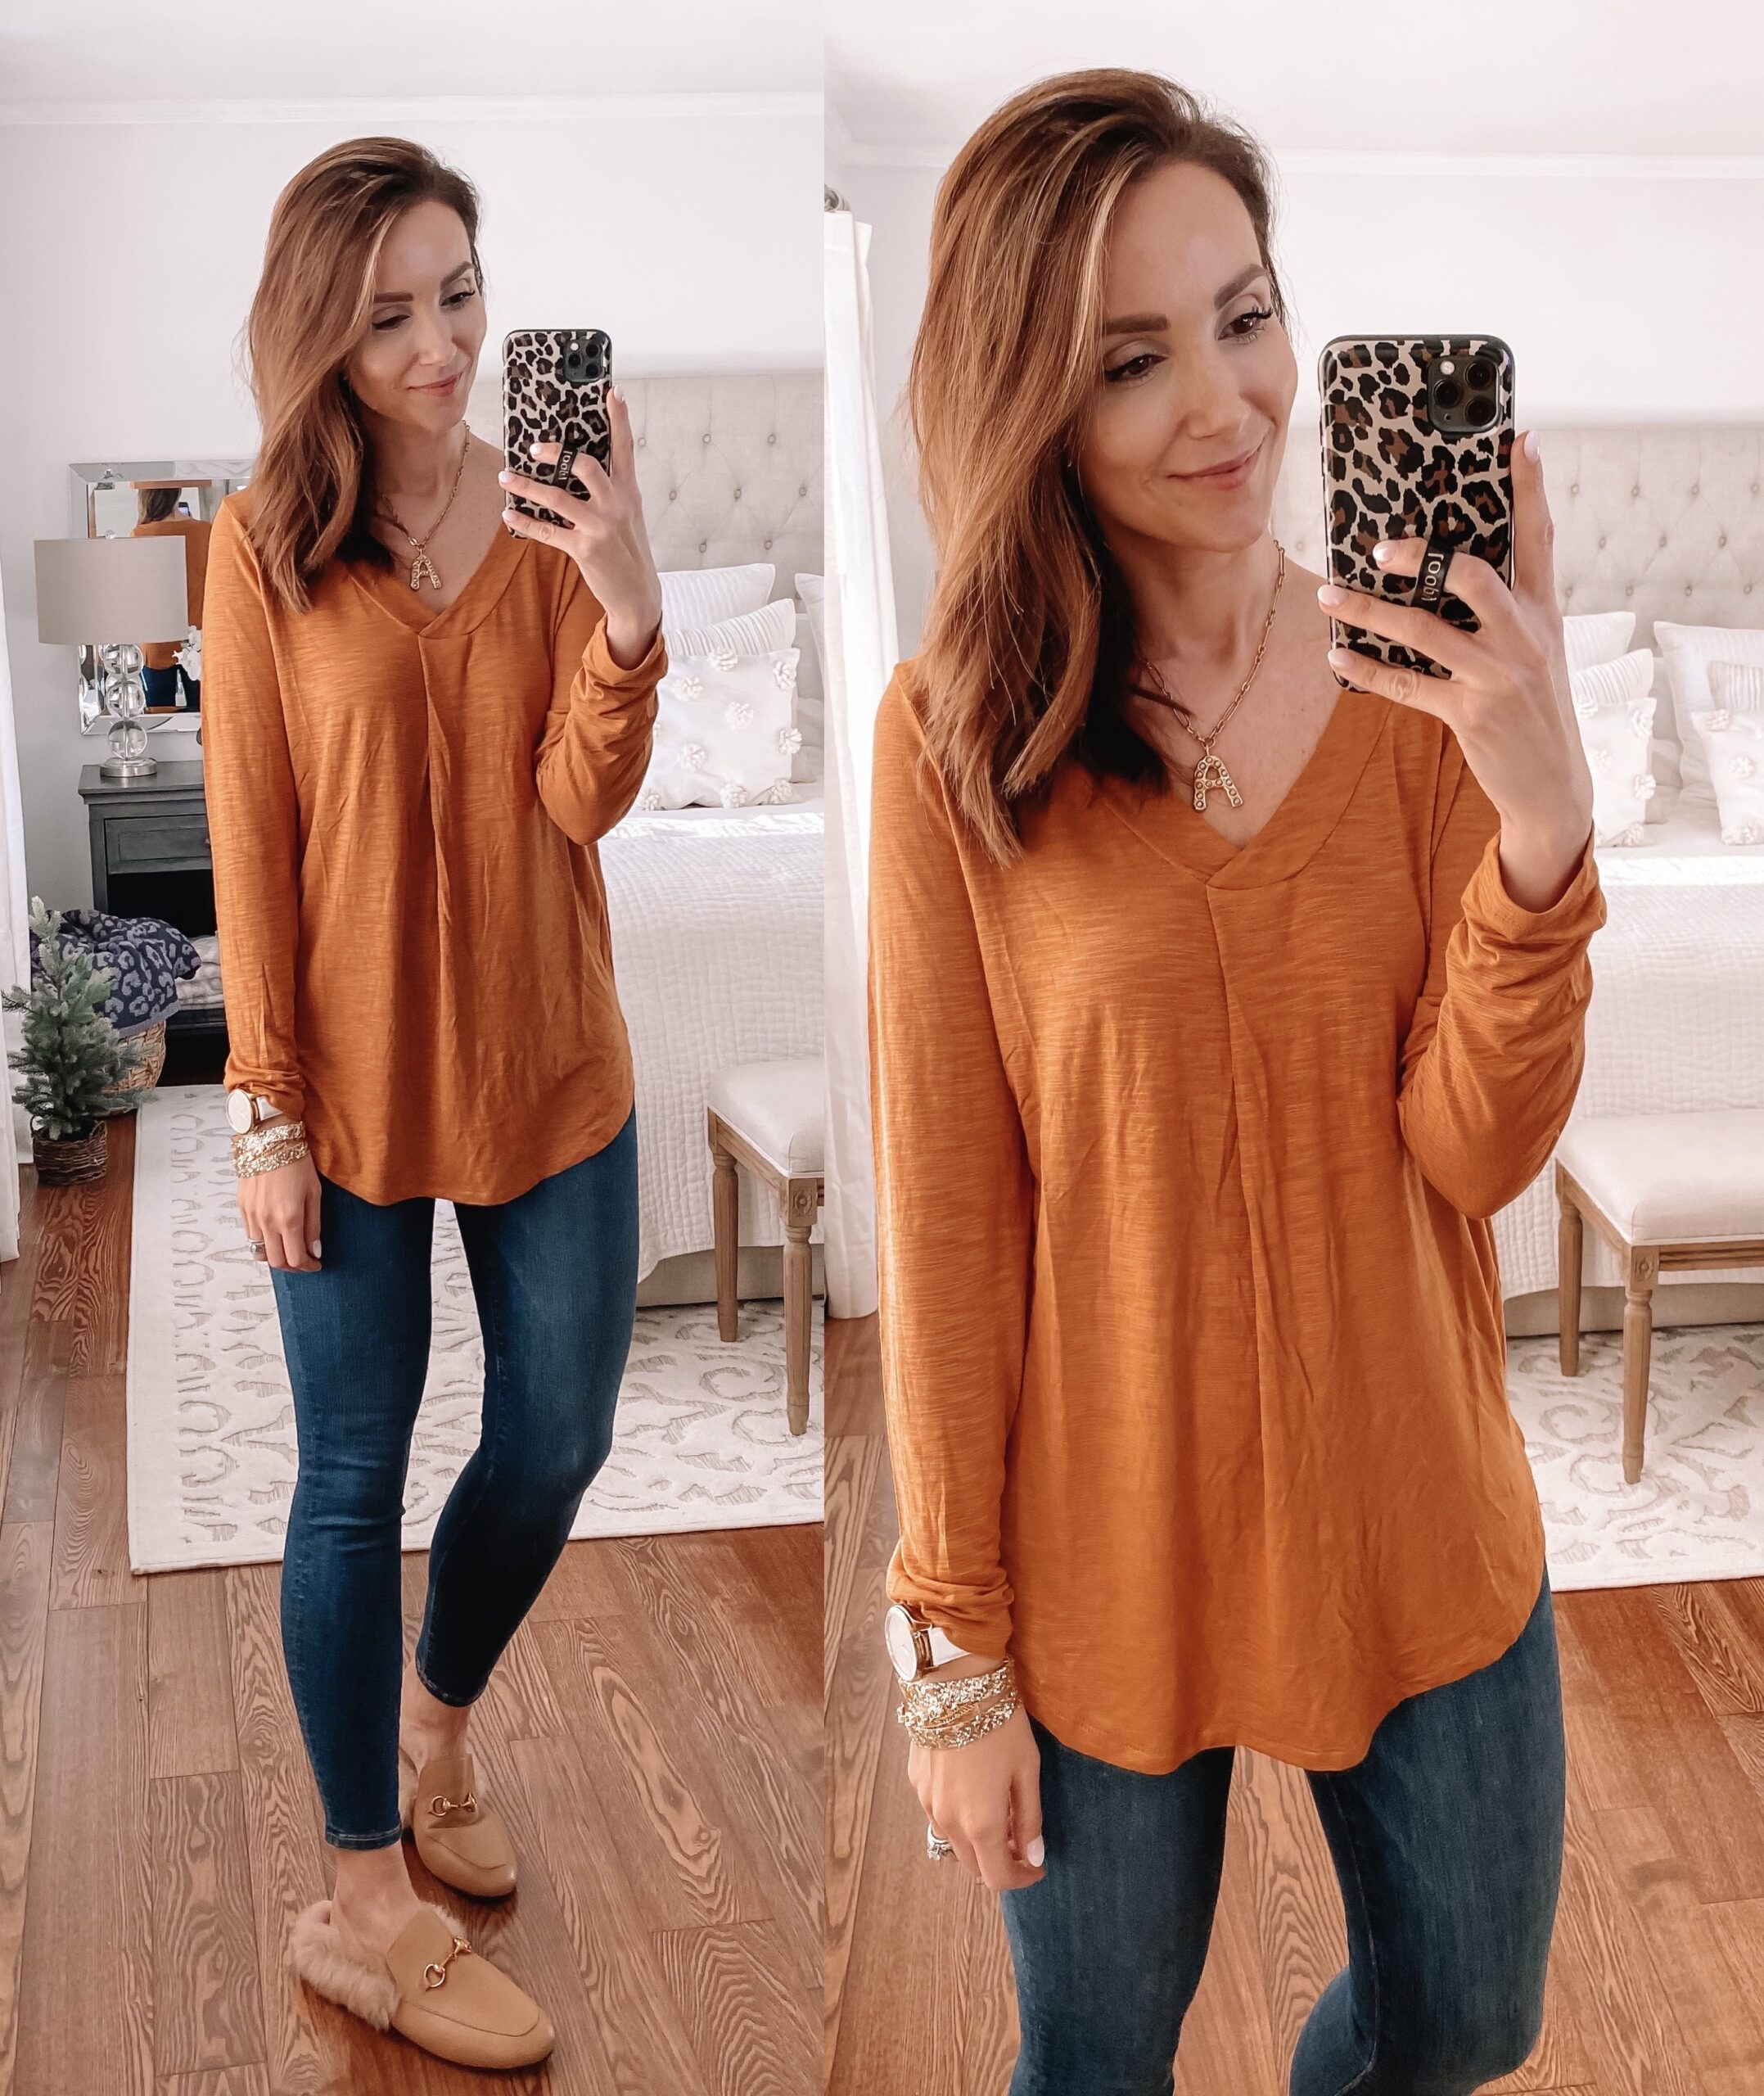 old navy layering tee, casual outfit